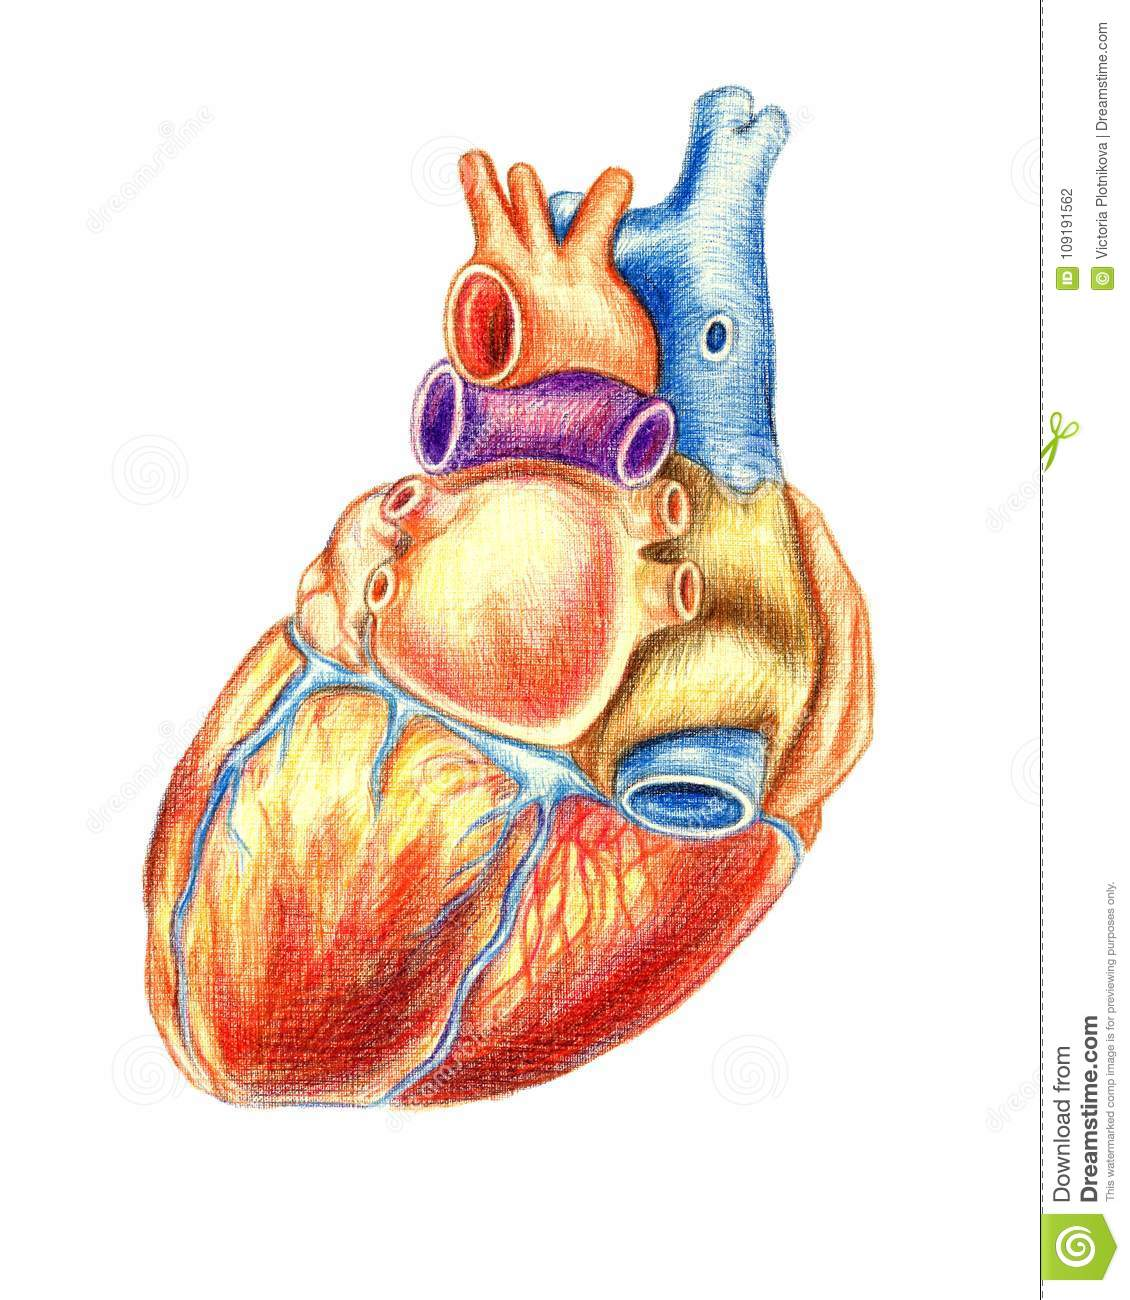 The Human Heart Viewed From Behind Stock Illustration - Illustration ...